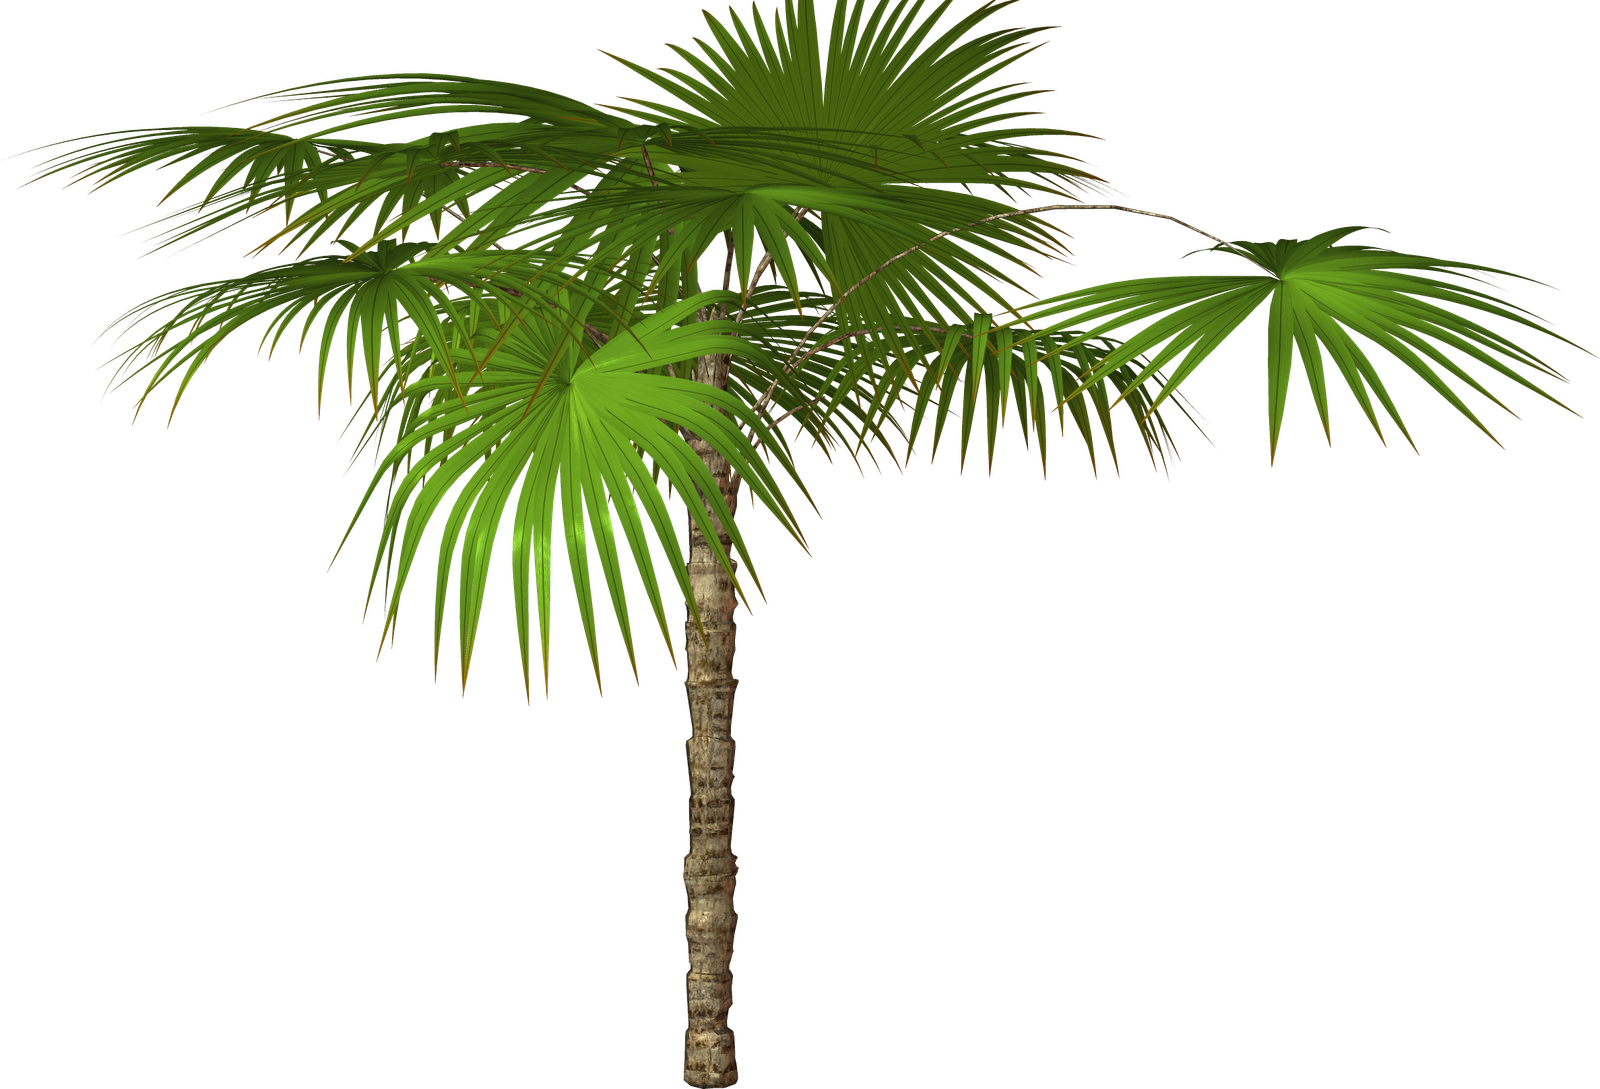 palm tree clip art - photo #19